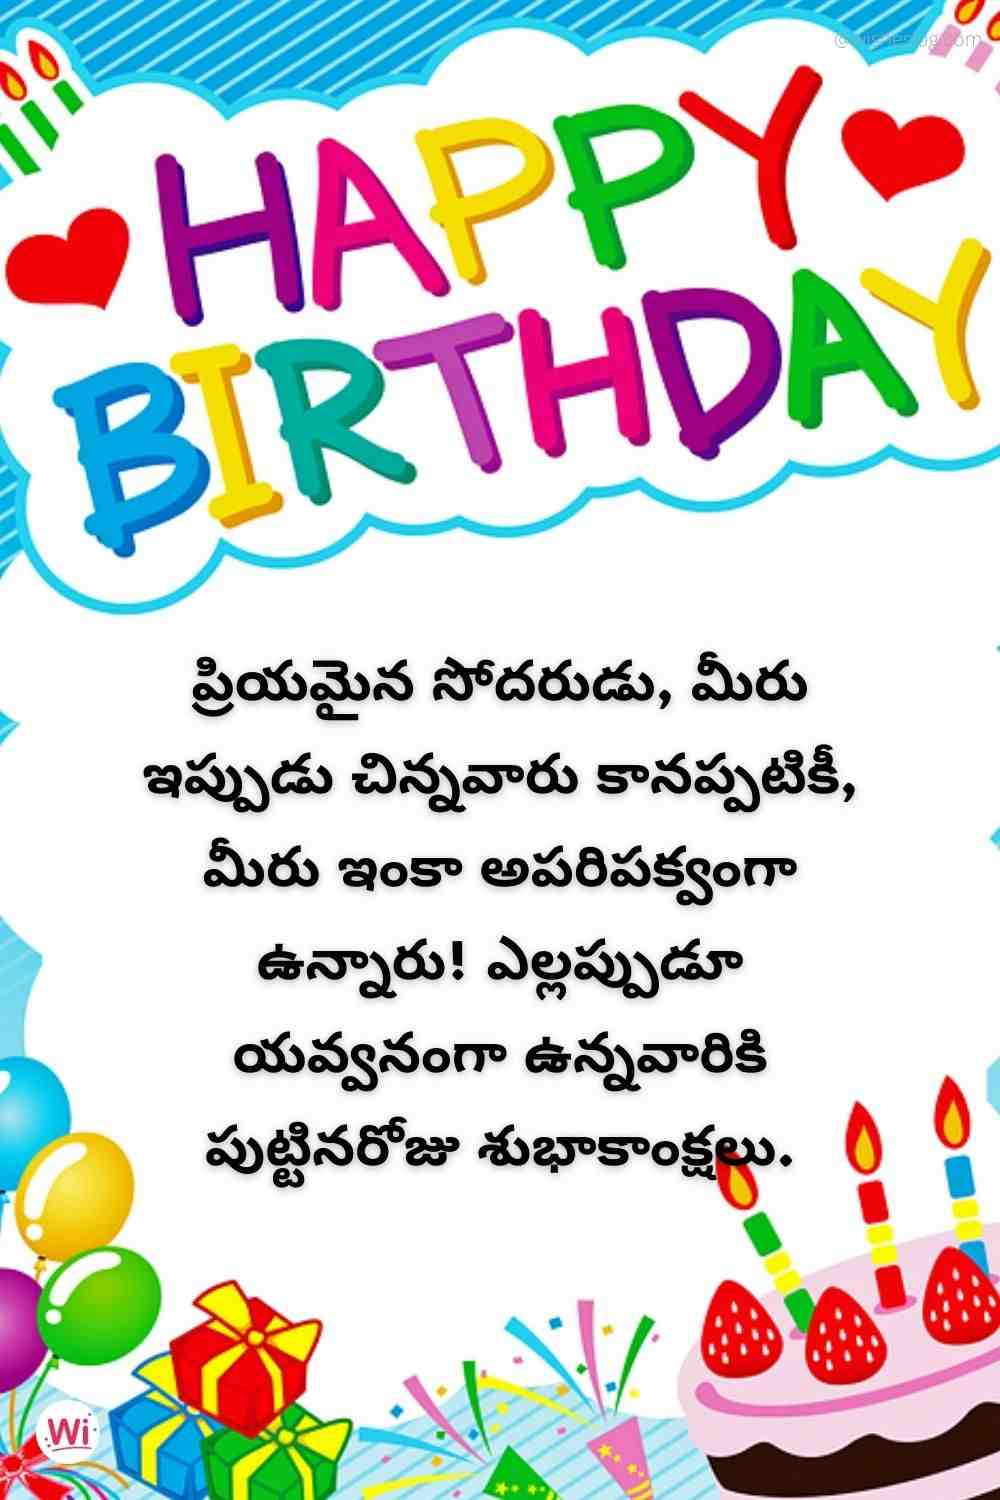 telugu funny birthday wishes for brother